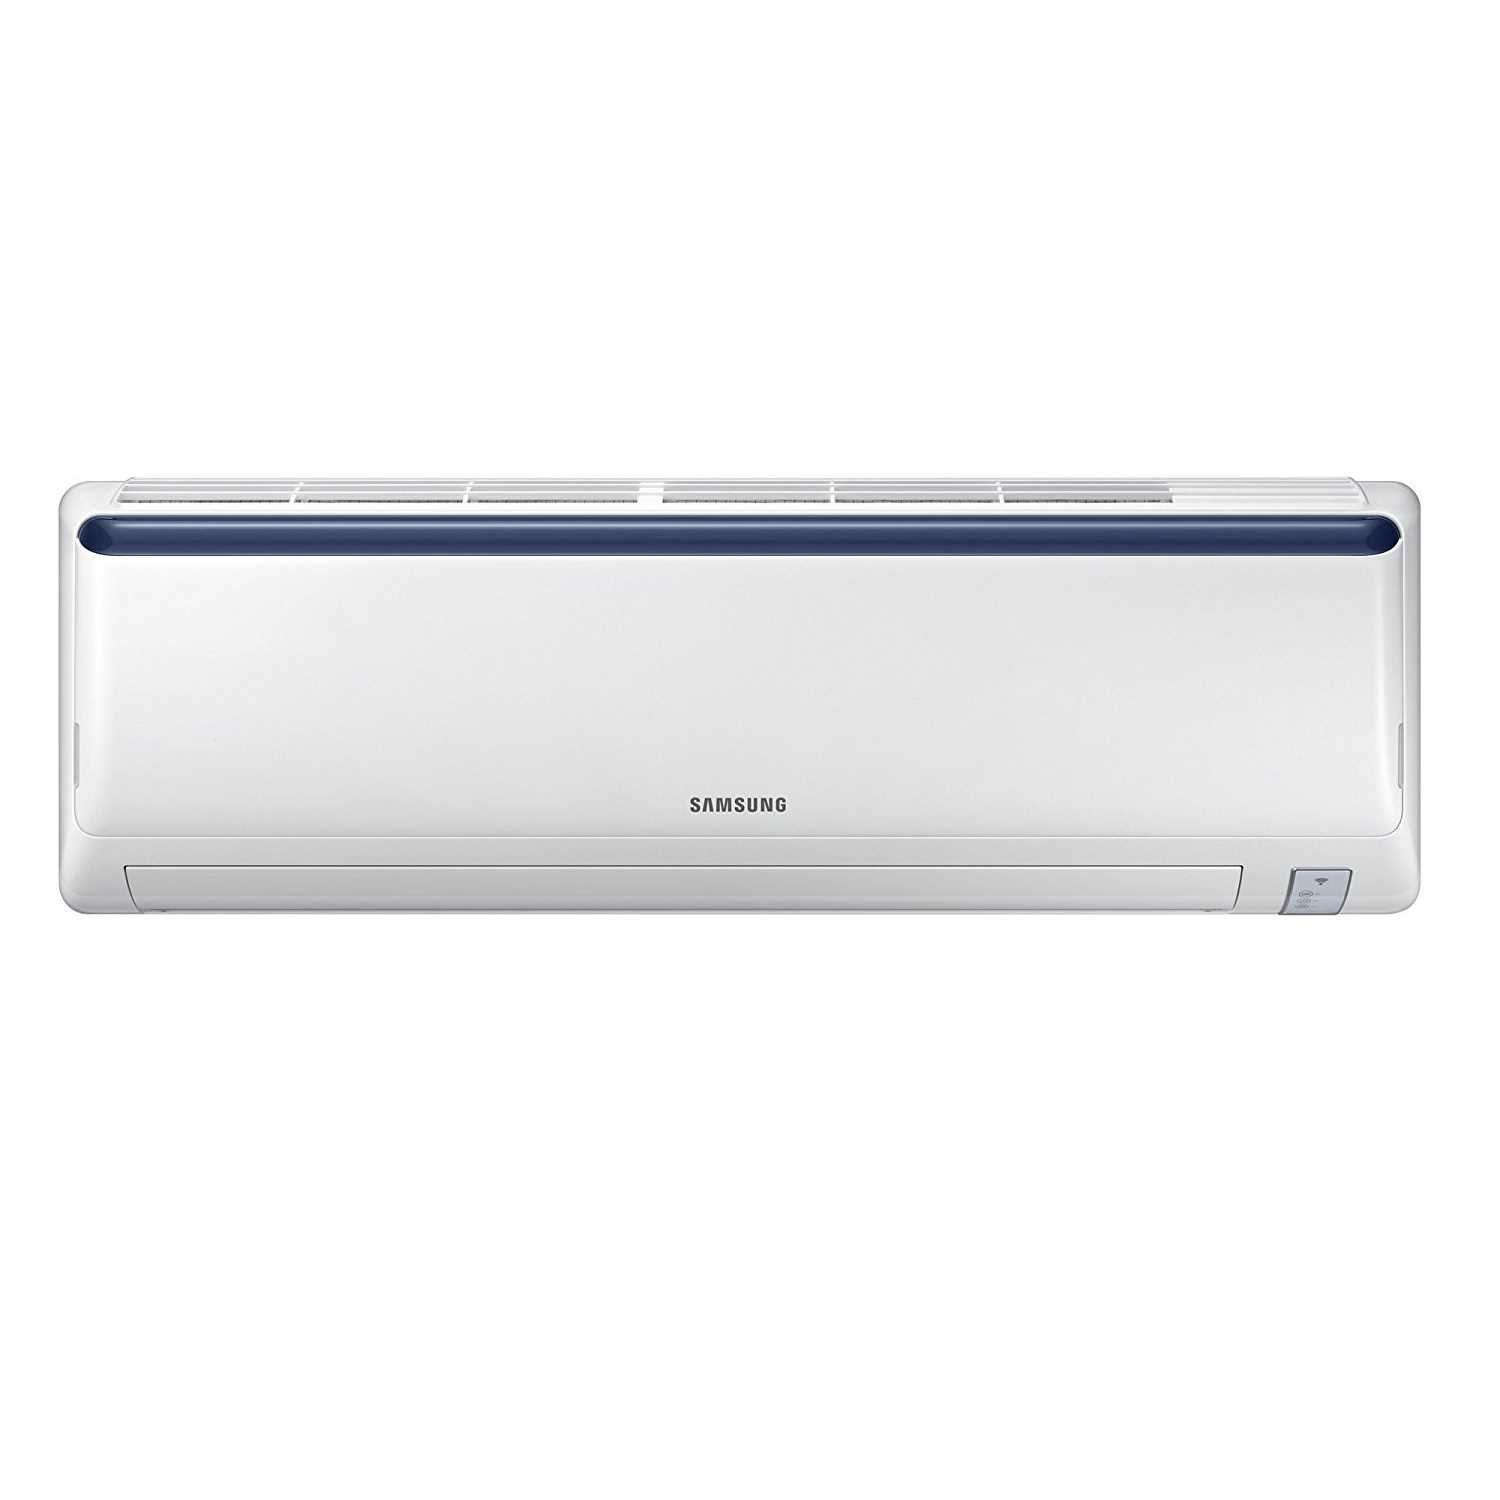 Samsung AR12NV3JGMC 1 Ton 3 Star Inverter Split AC